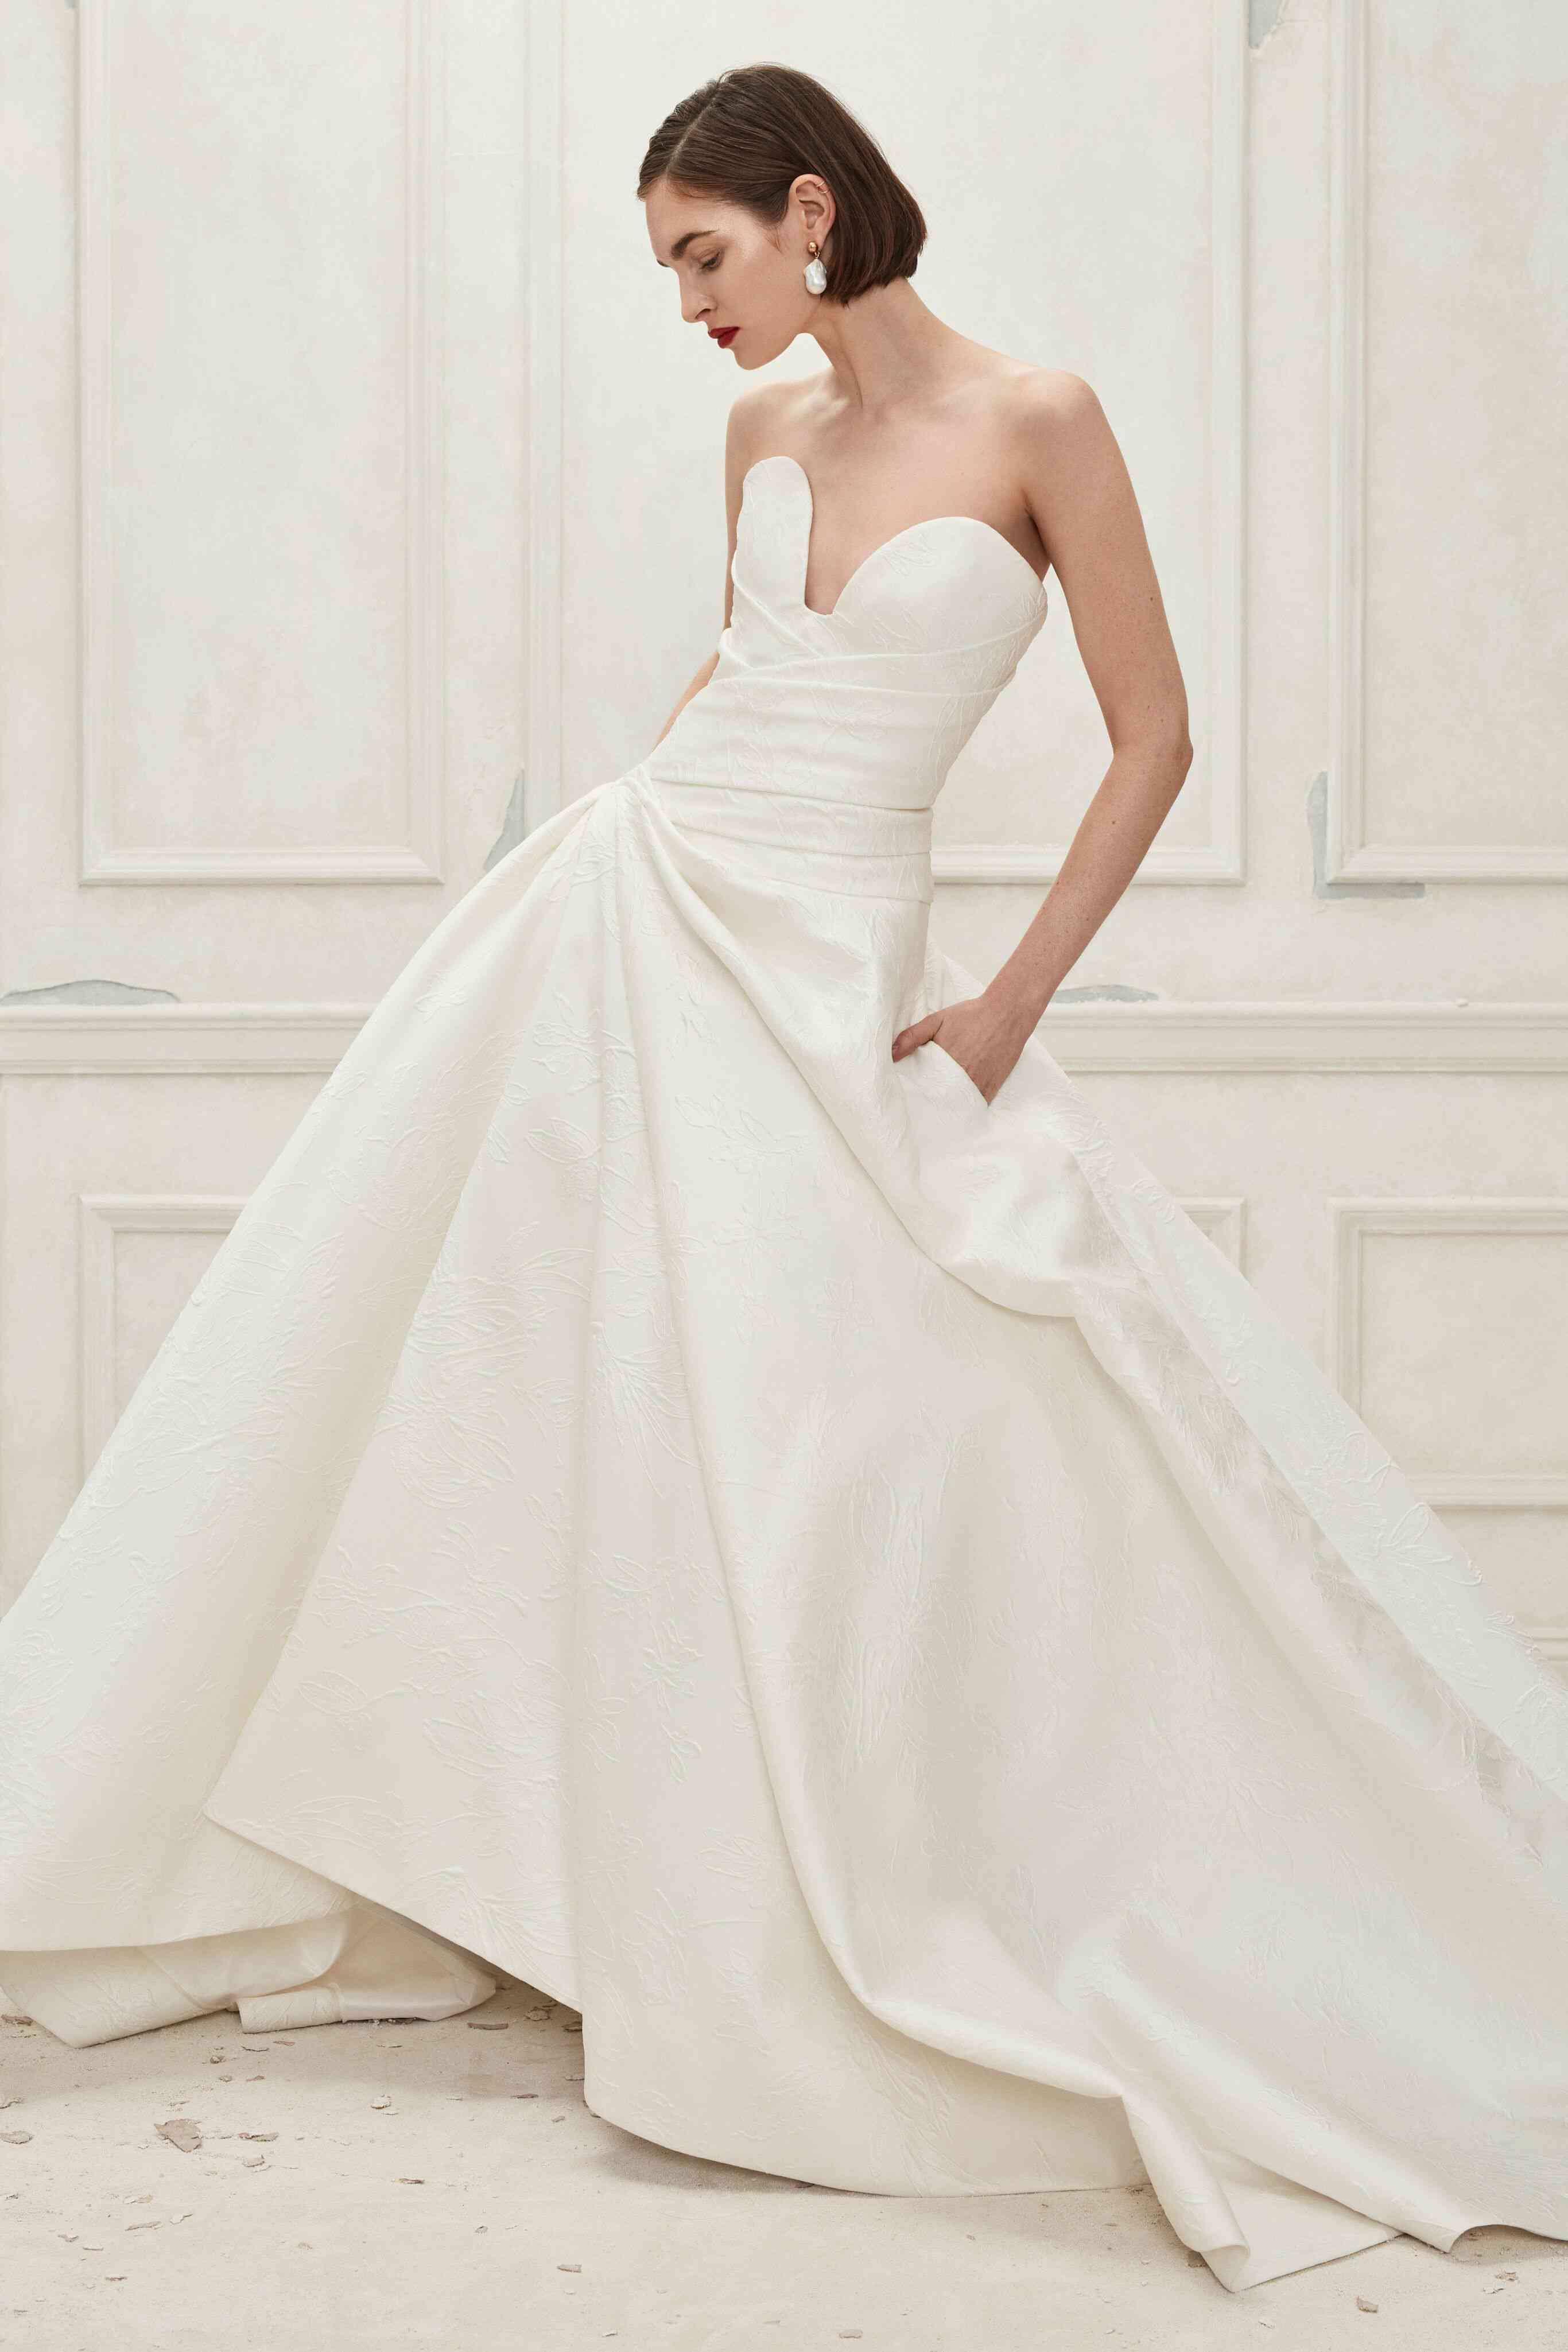 Model in white wedding gown with pockets